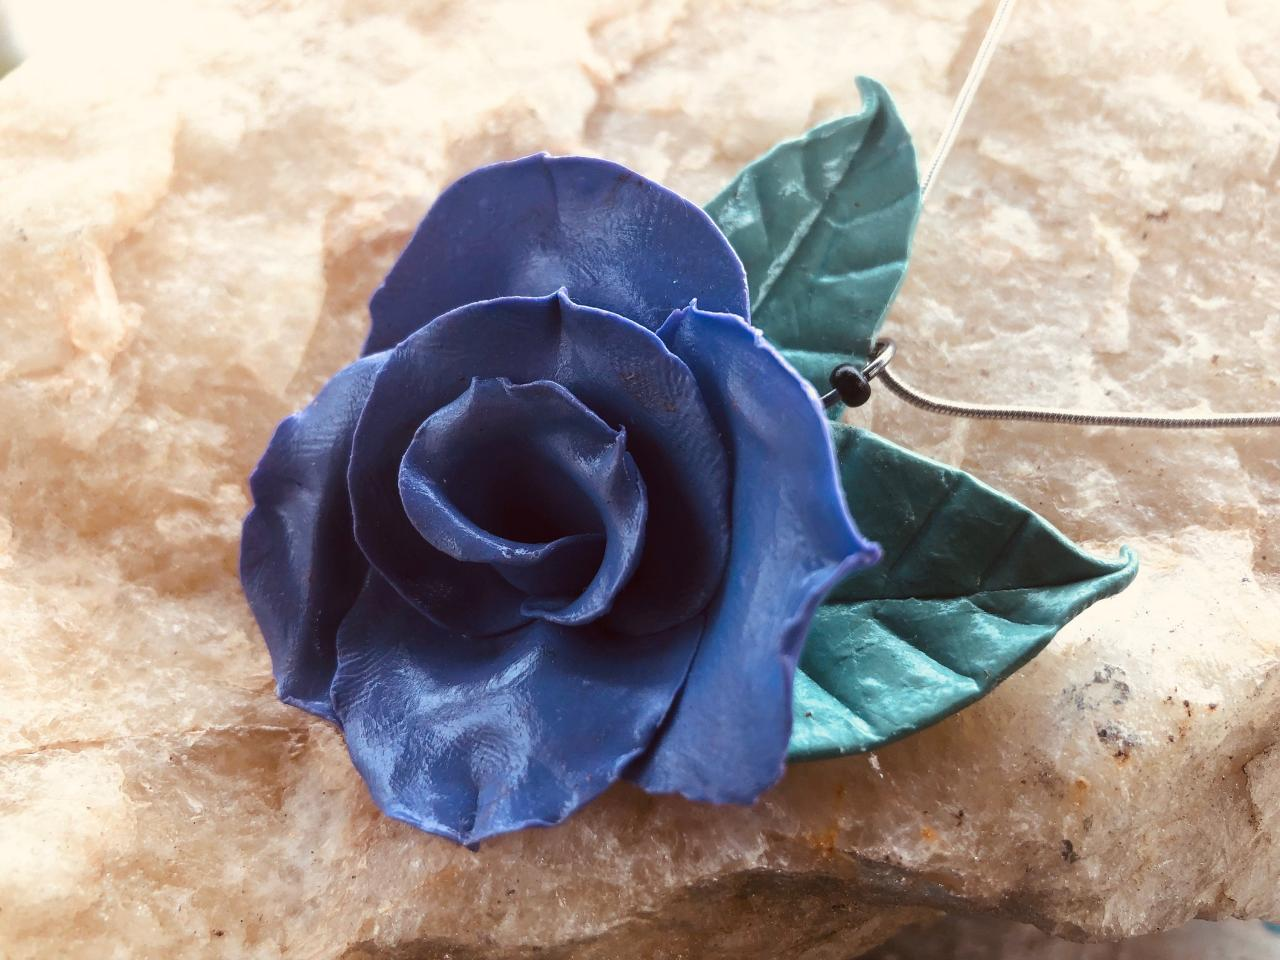 Lilac Indigo Clay Rose w/Light Sage Green Leaves Handmade Pendant on 18' Silver-Plated Snake Chain